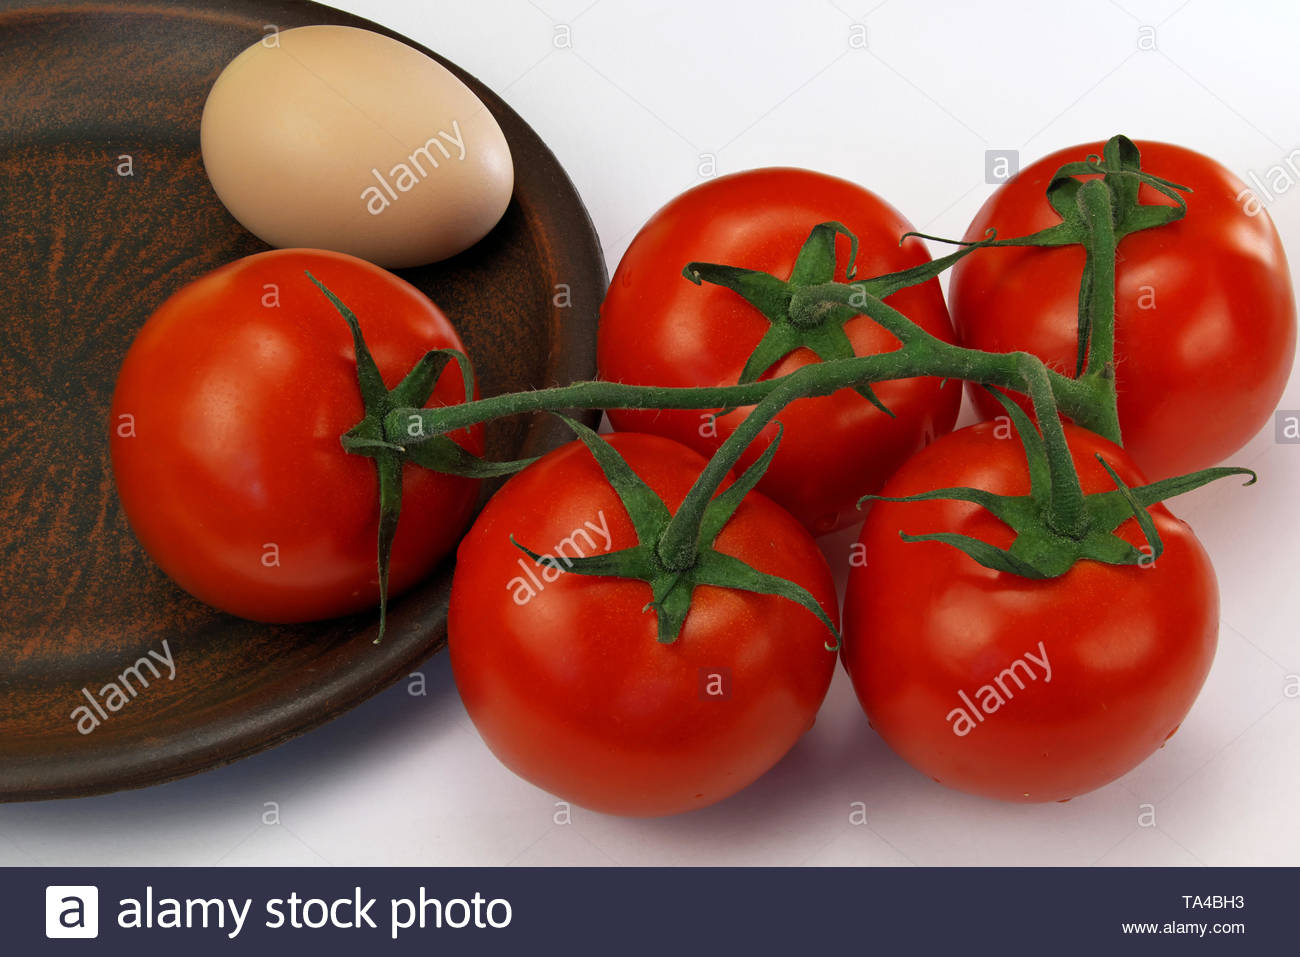 Five red ripe tomatoes on a twig and an egg on a clay plate on a white background close-up - Stock Image